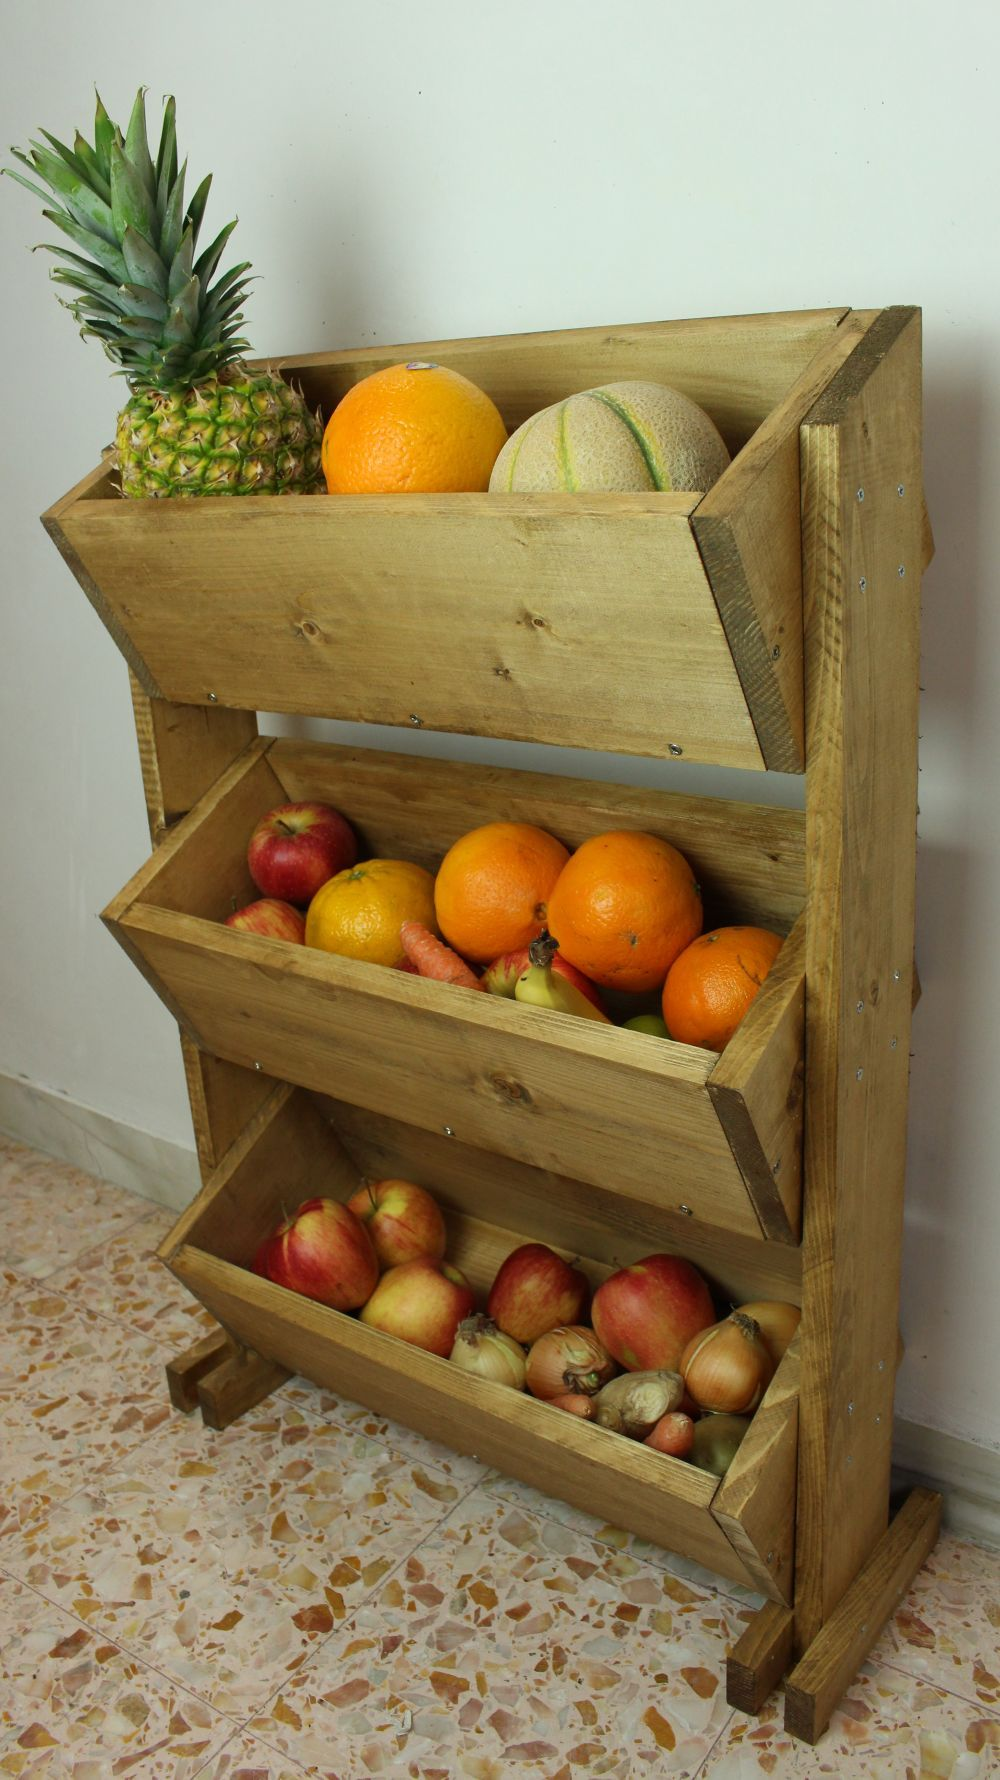 Build A Market Style Wooden Fruit Holder Fruit Holder Fruit Stands Fruit